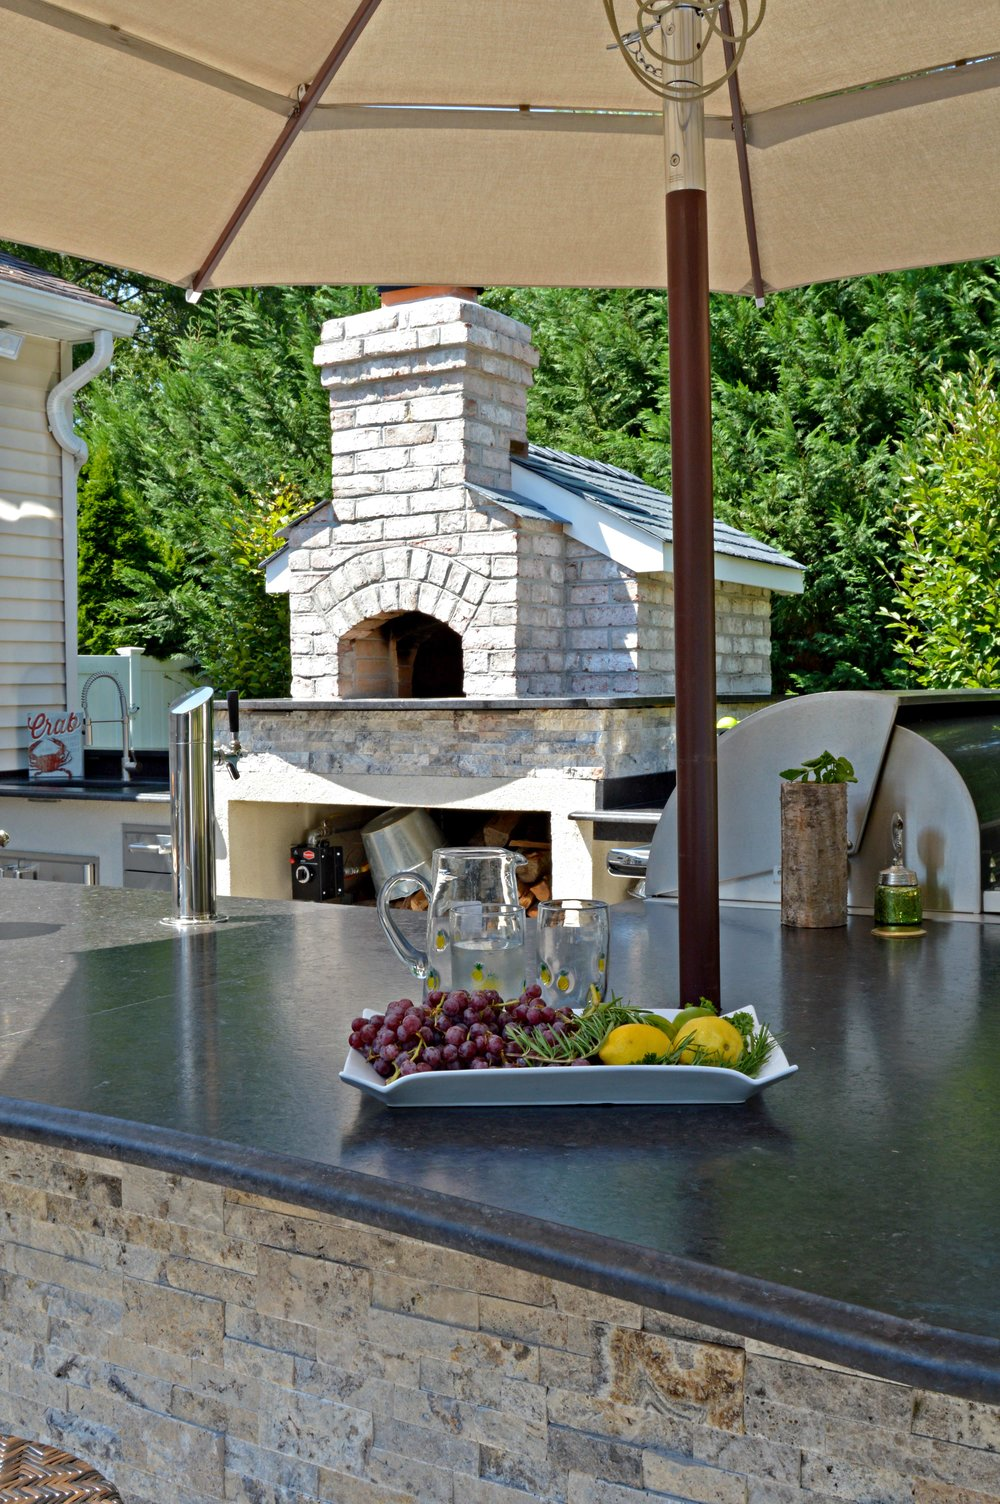 Holbrook, NY outdoor kitchen and pizza oven